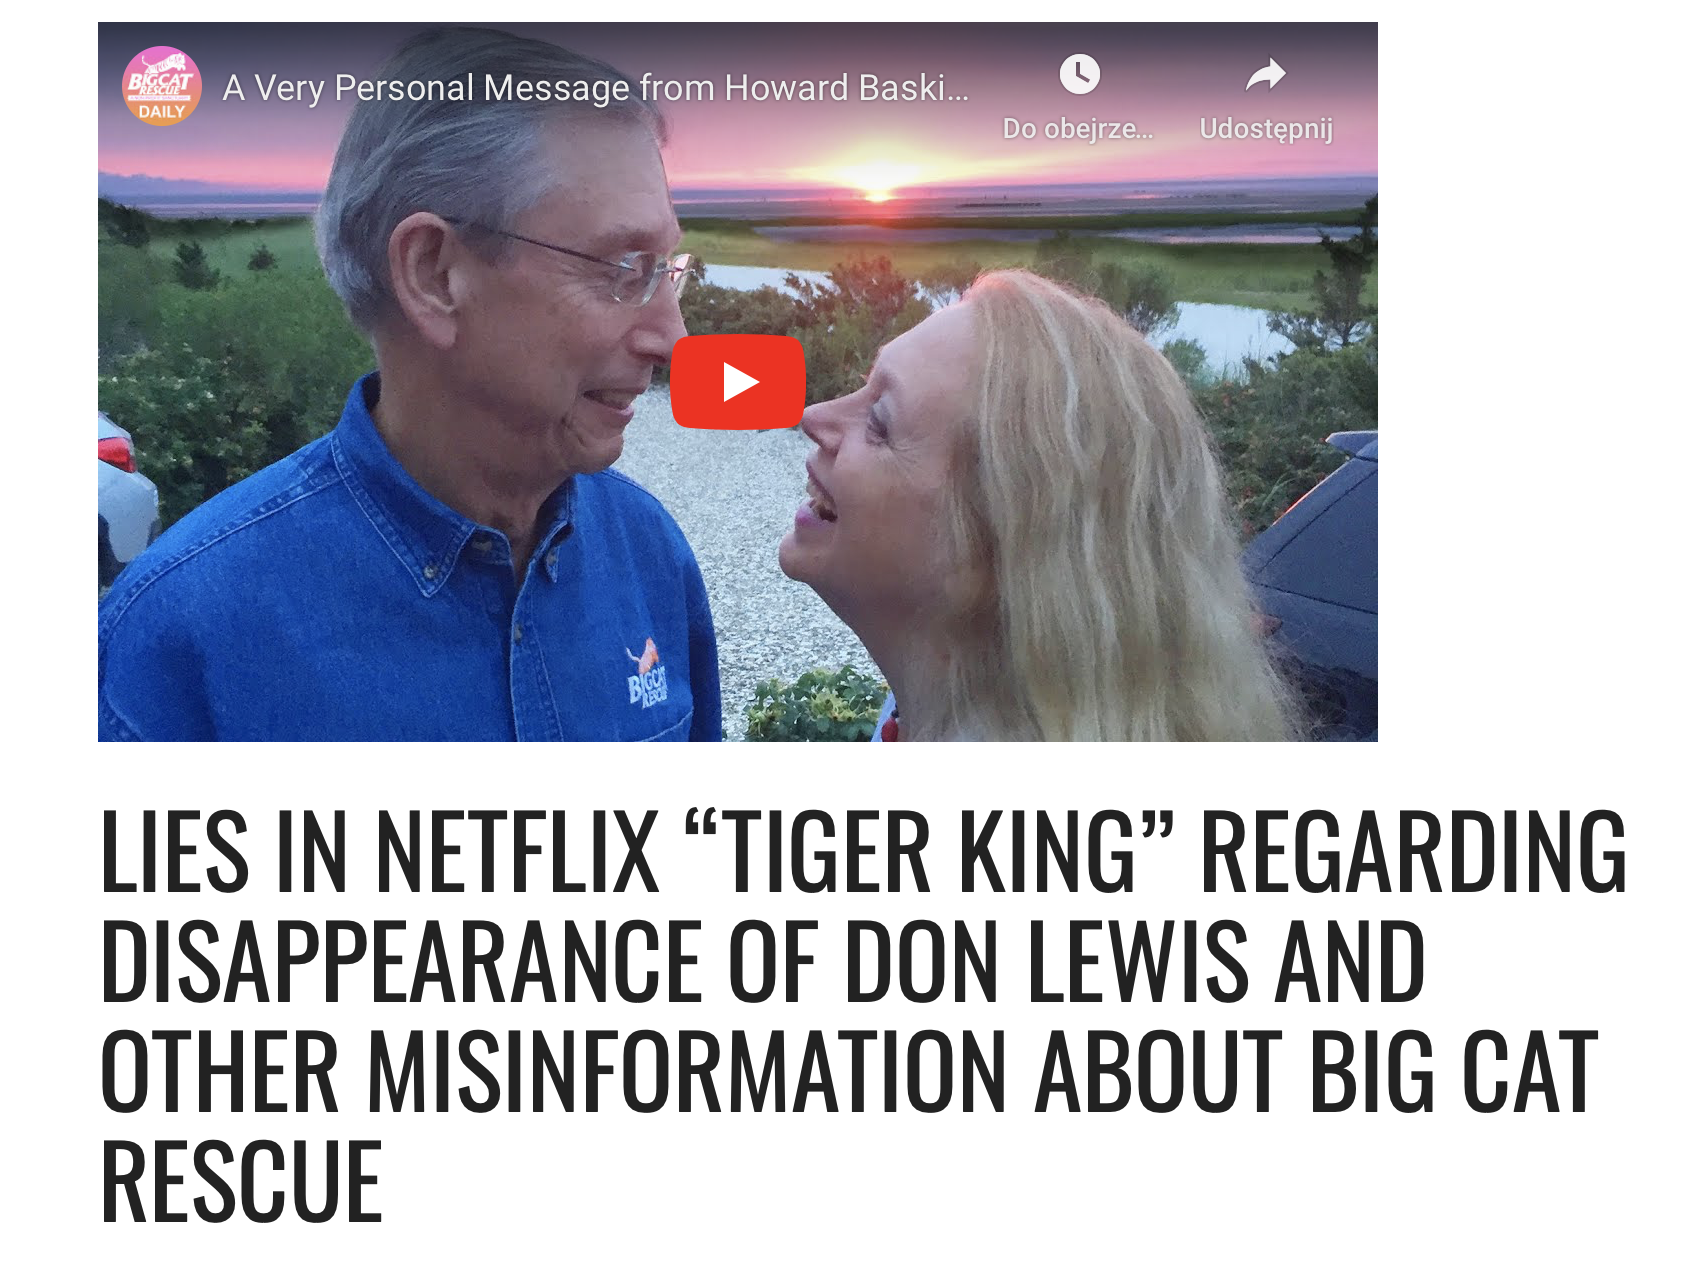 big cat rescue message about tiger king (2020) screenshot cultural hater